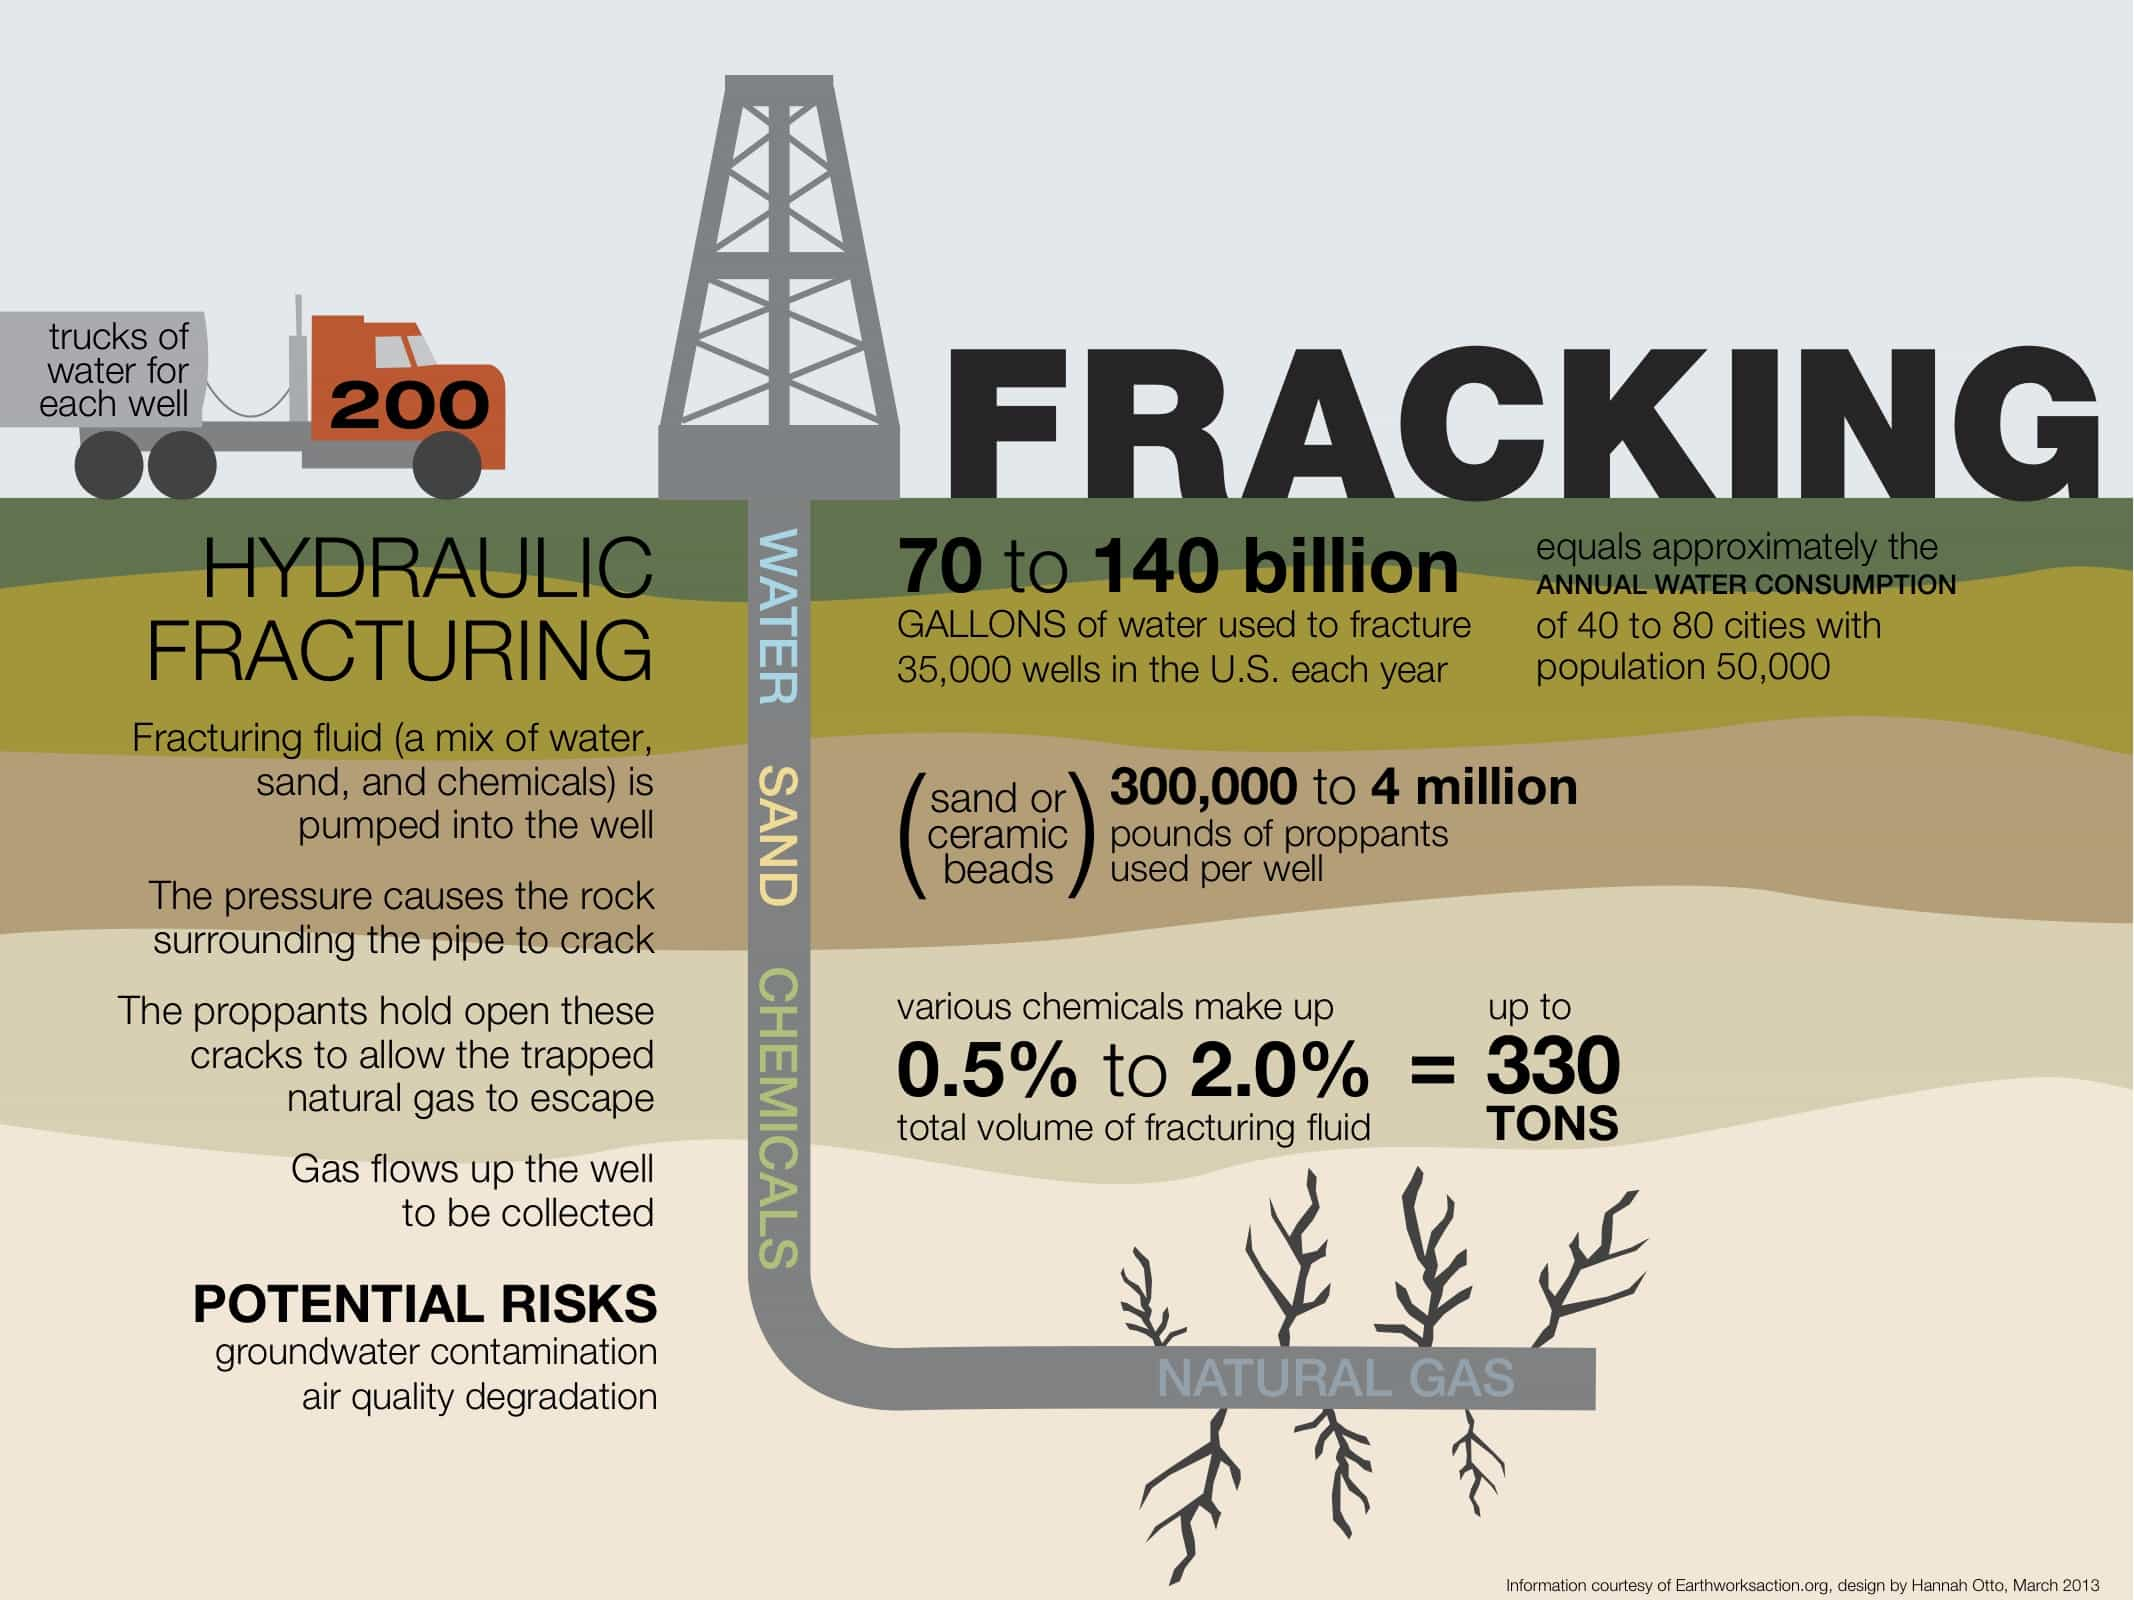 Infographic showing how fracking works, detailing substances and water pumped underground and risks to groundwater and air